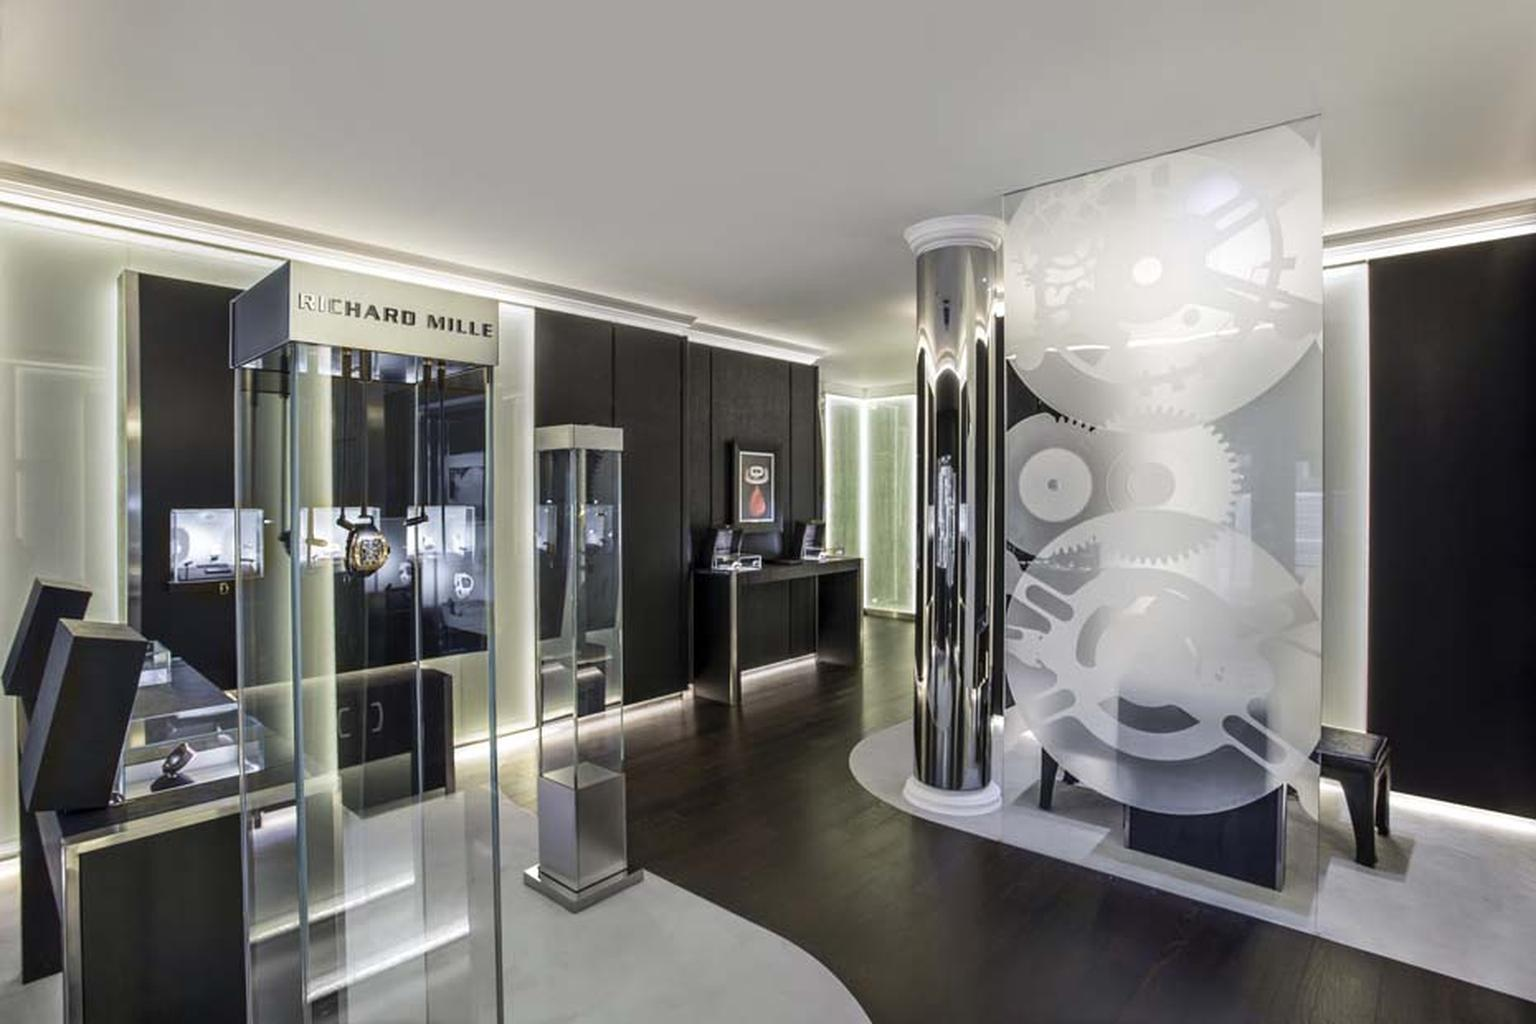 """Opening the boutique in London gives prominence to the brand's global presence and we are delighted to be part of this distinguished and vibrant area of London,"" says Richard Mille watches Europe Middle East and Africa CEO, Peter Harrison."